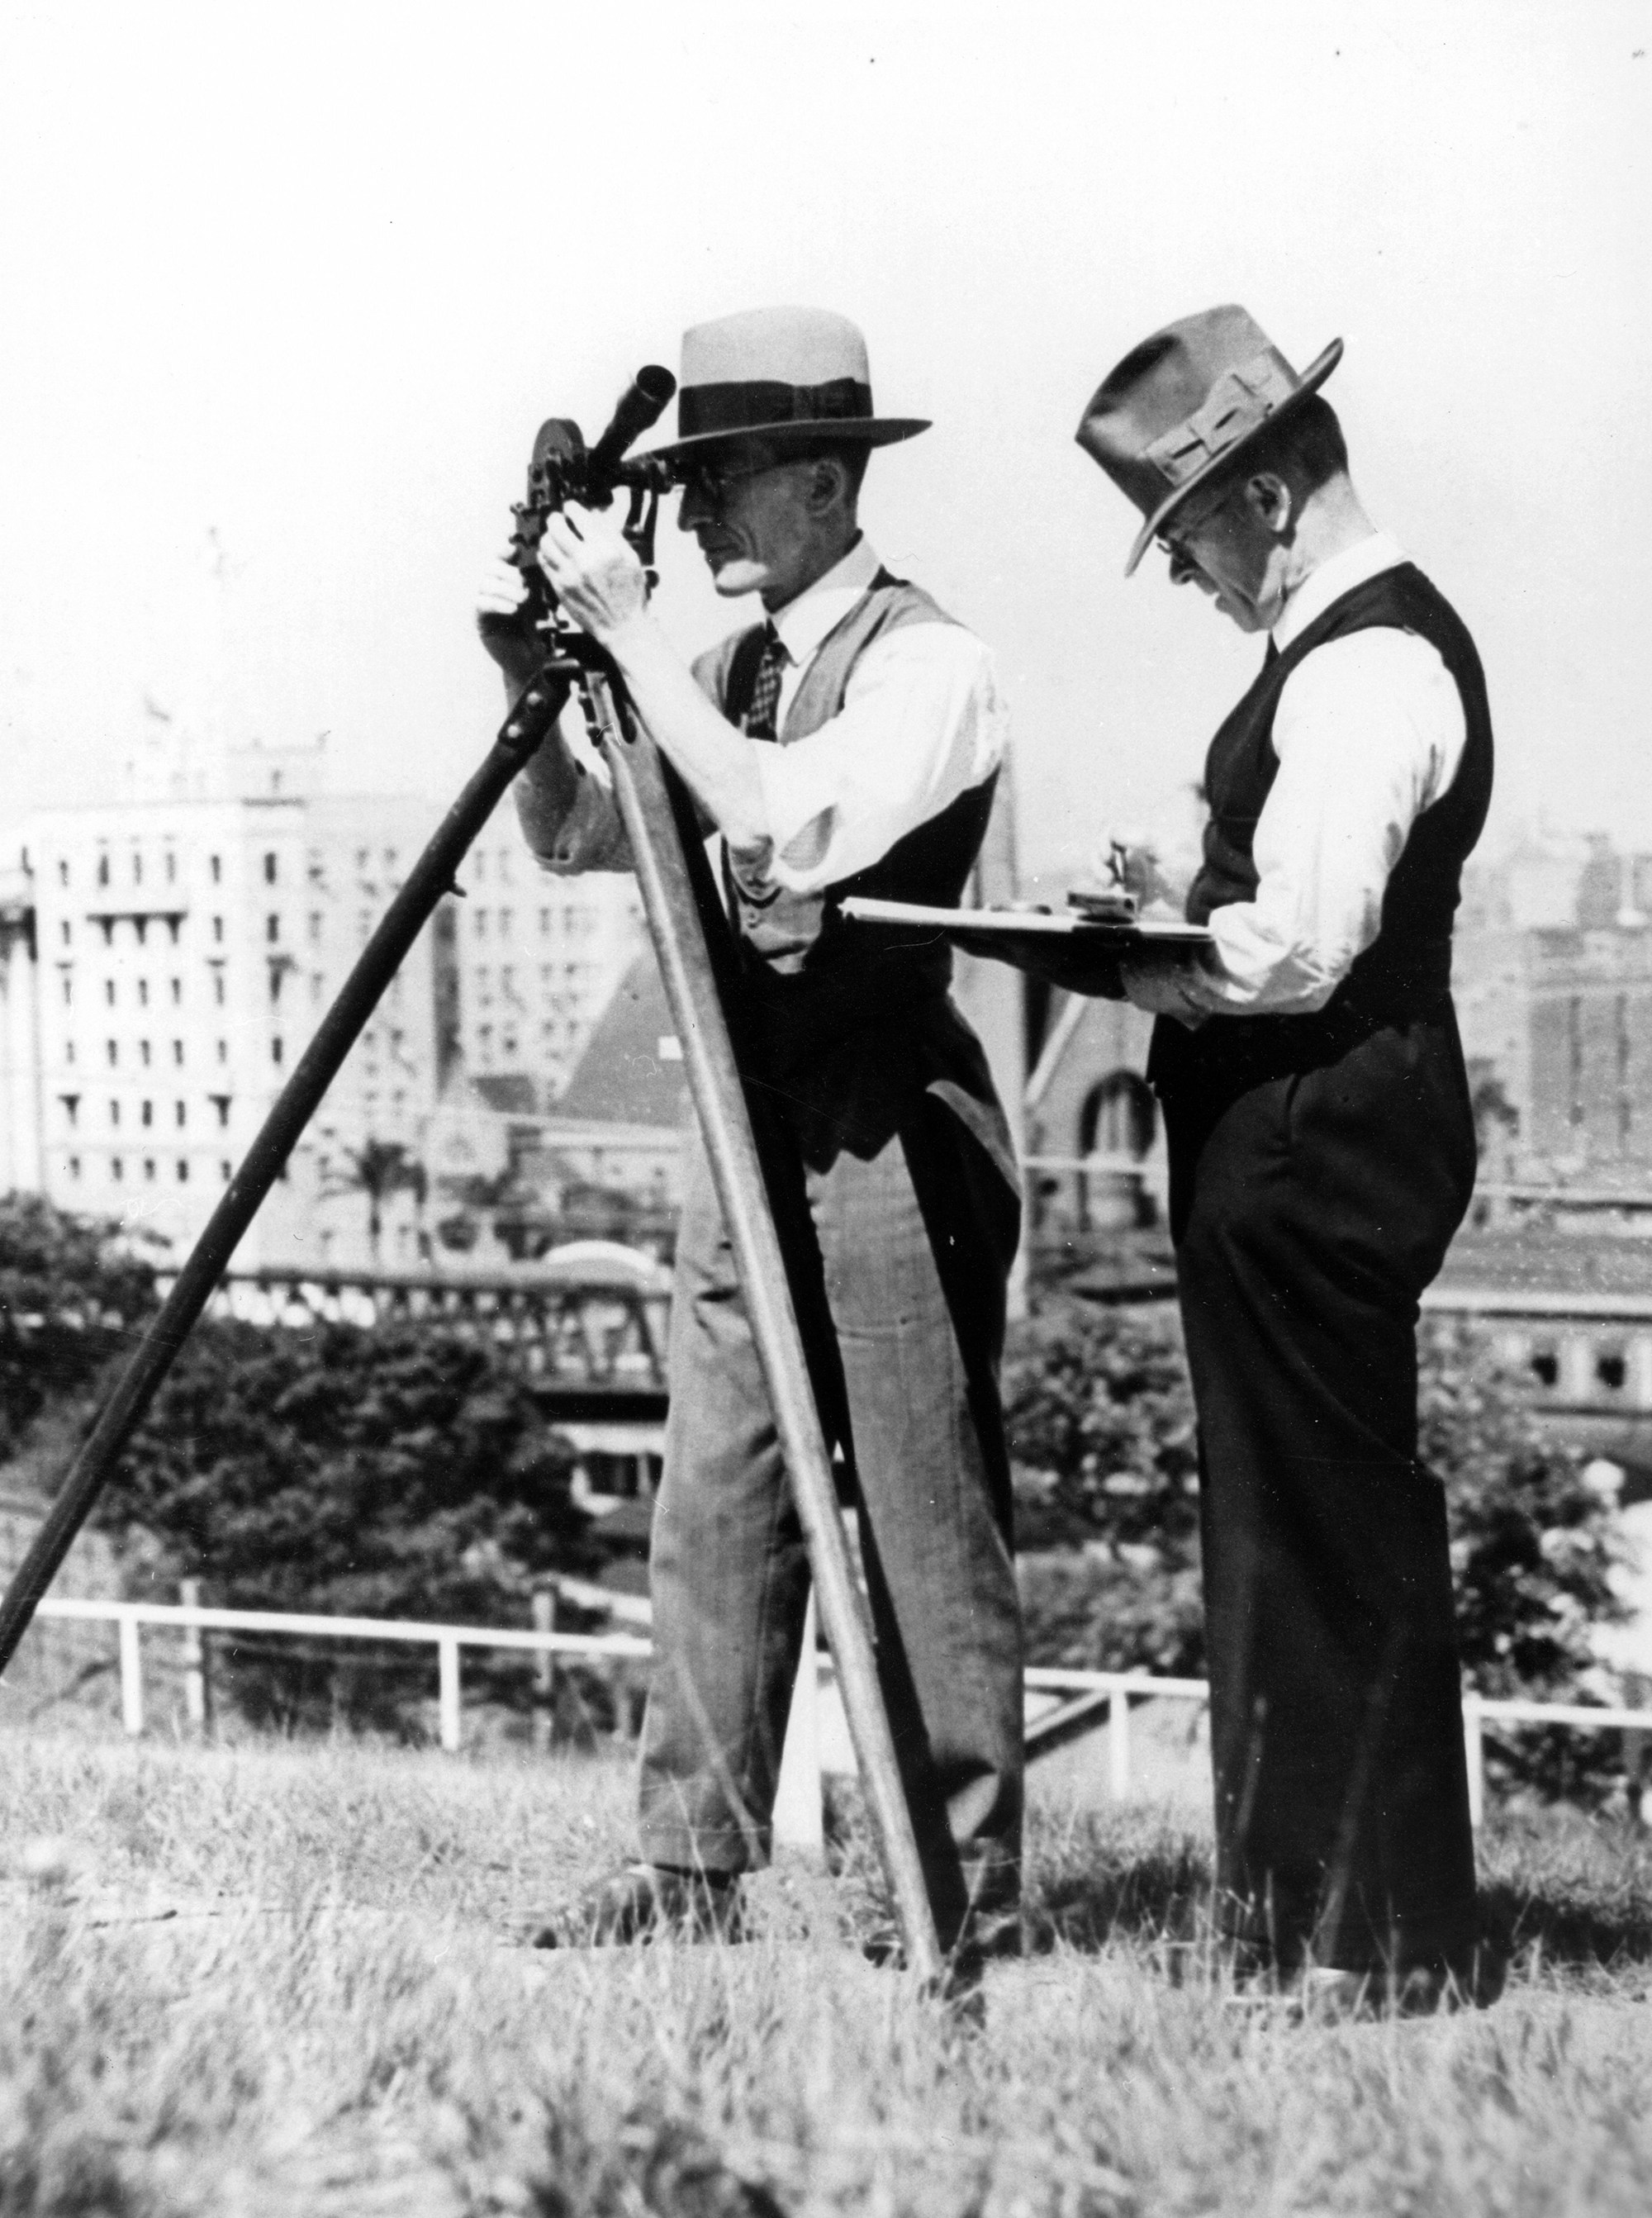 Two meteorologists registering information using their recording equipment, ca.1937